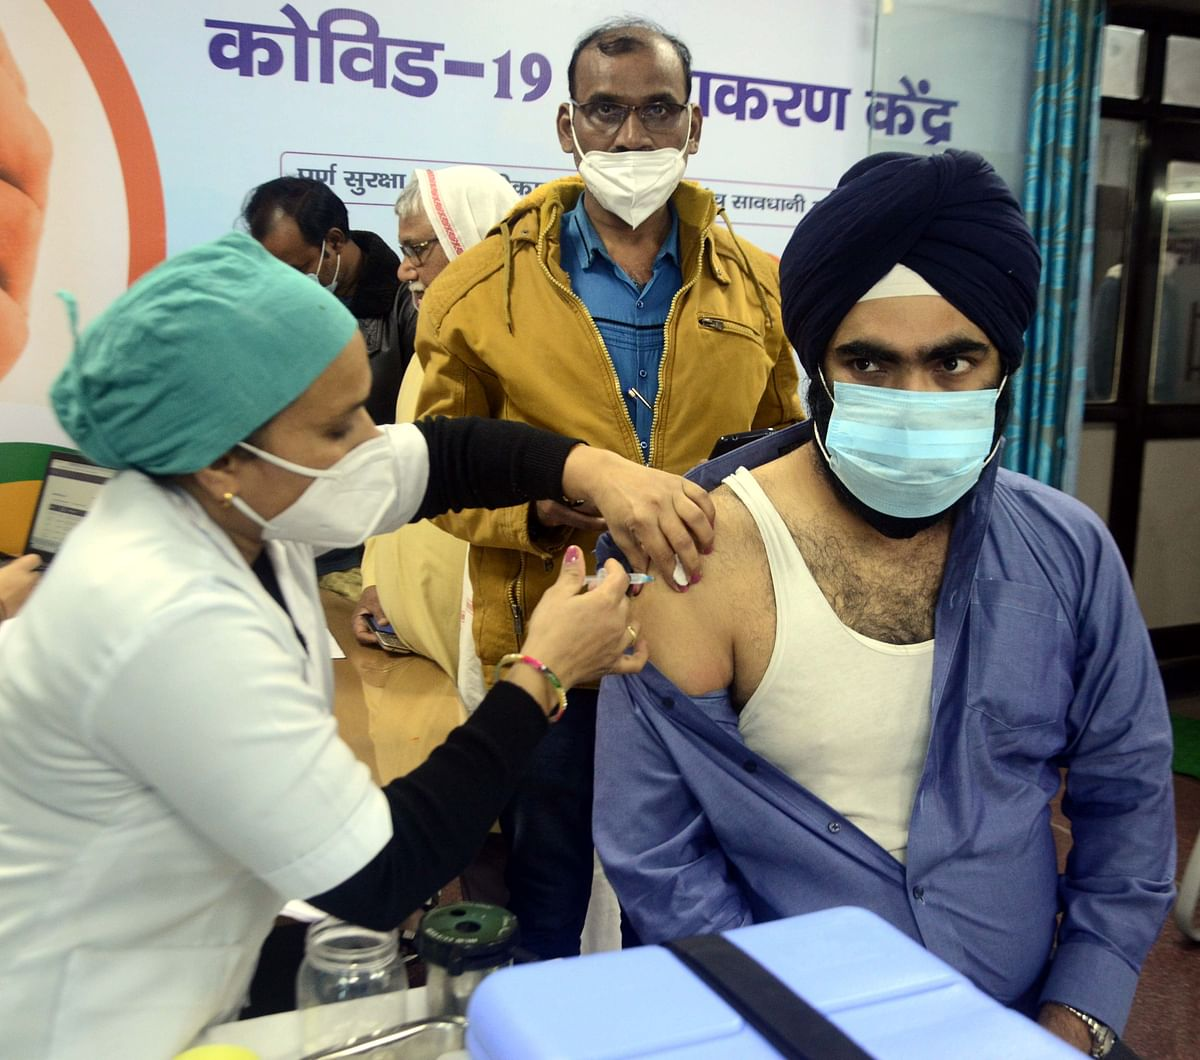 COVID-19 in Navi Mumbai: CIDCO joins hand in vaccination drive, starts at Ulwe health centre